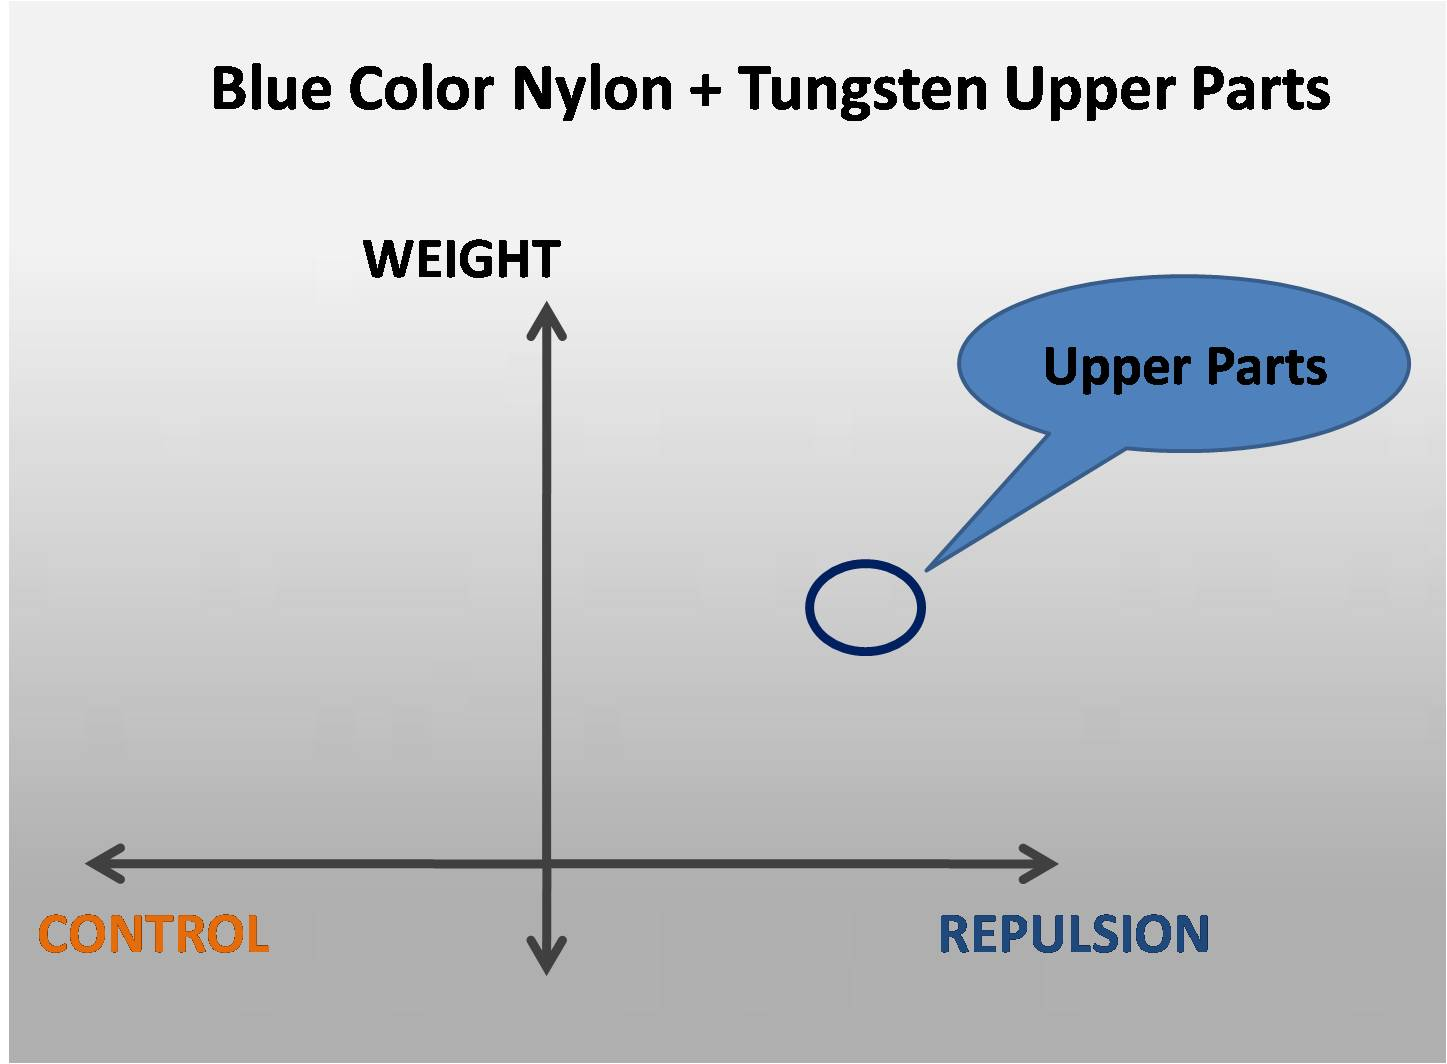 Blue Color Nylon + Tungsten Upper Parts